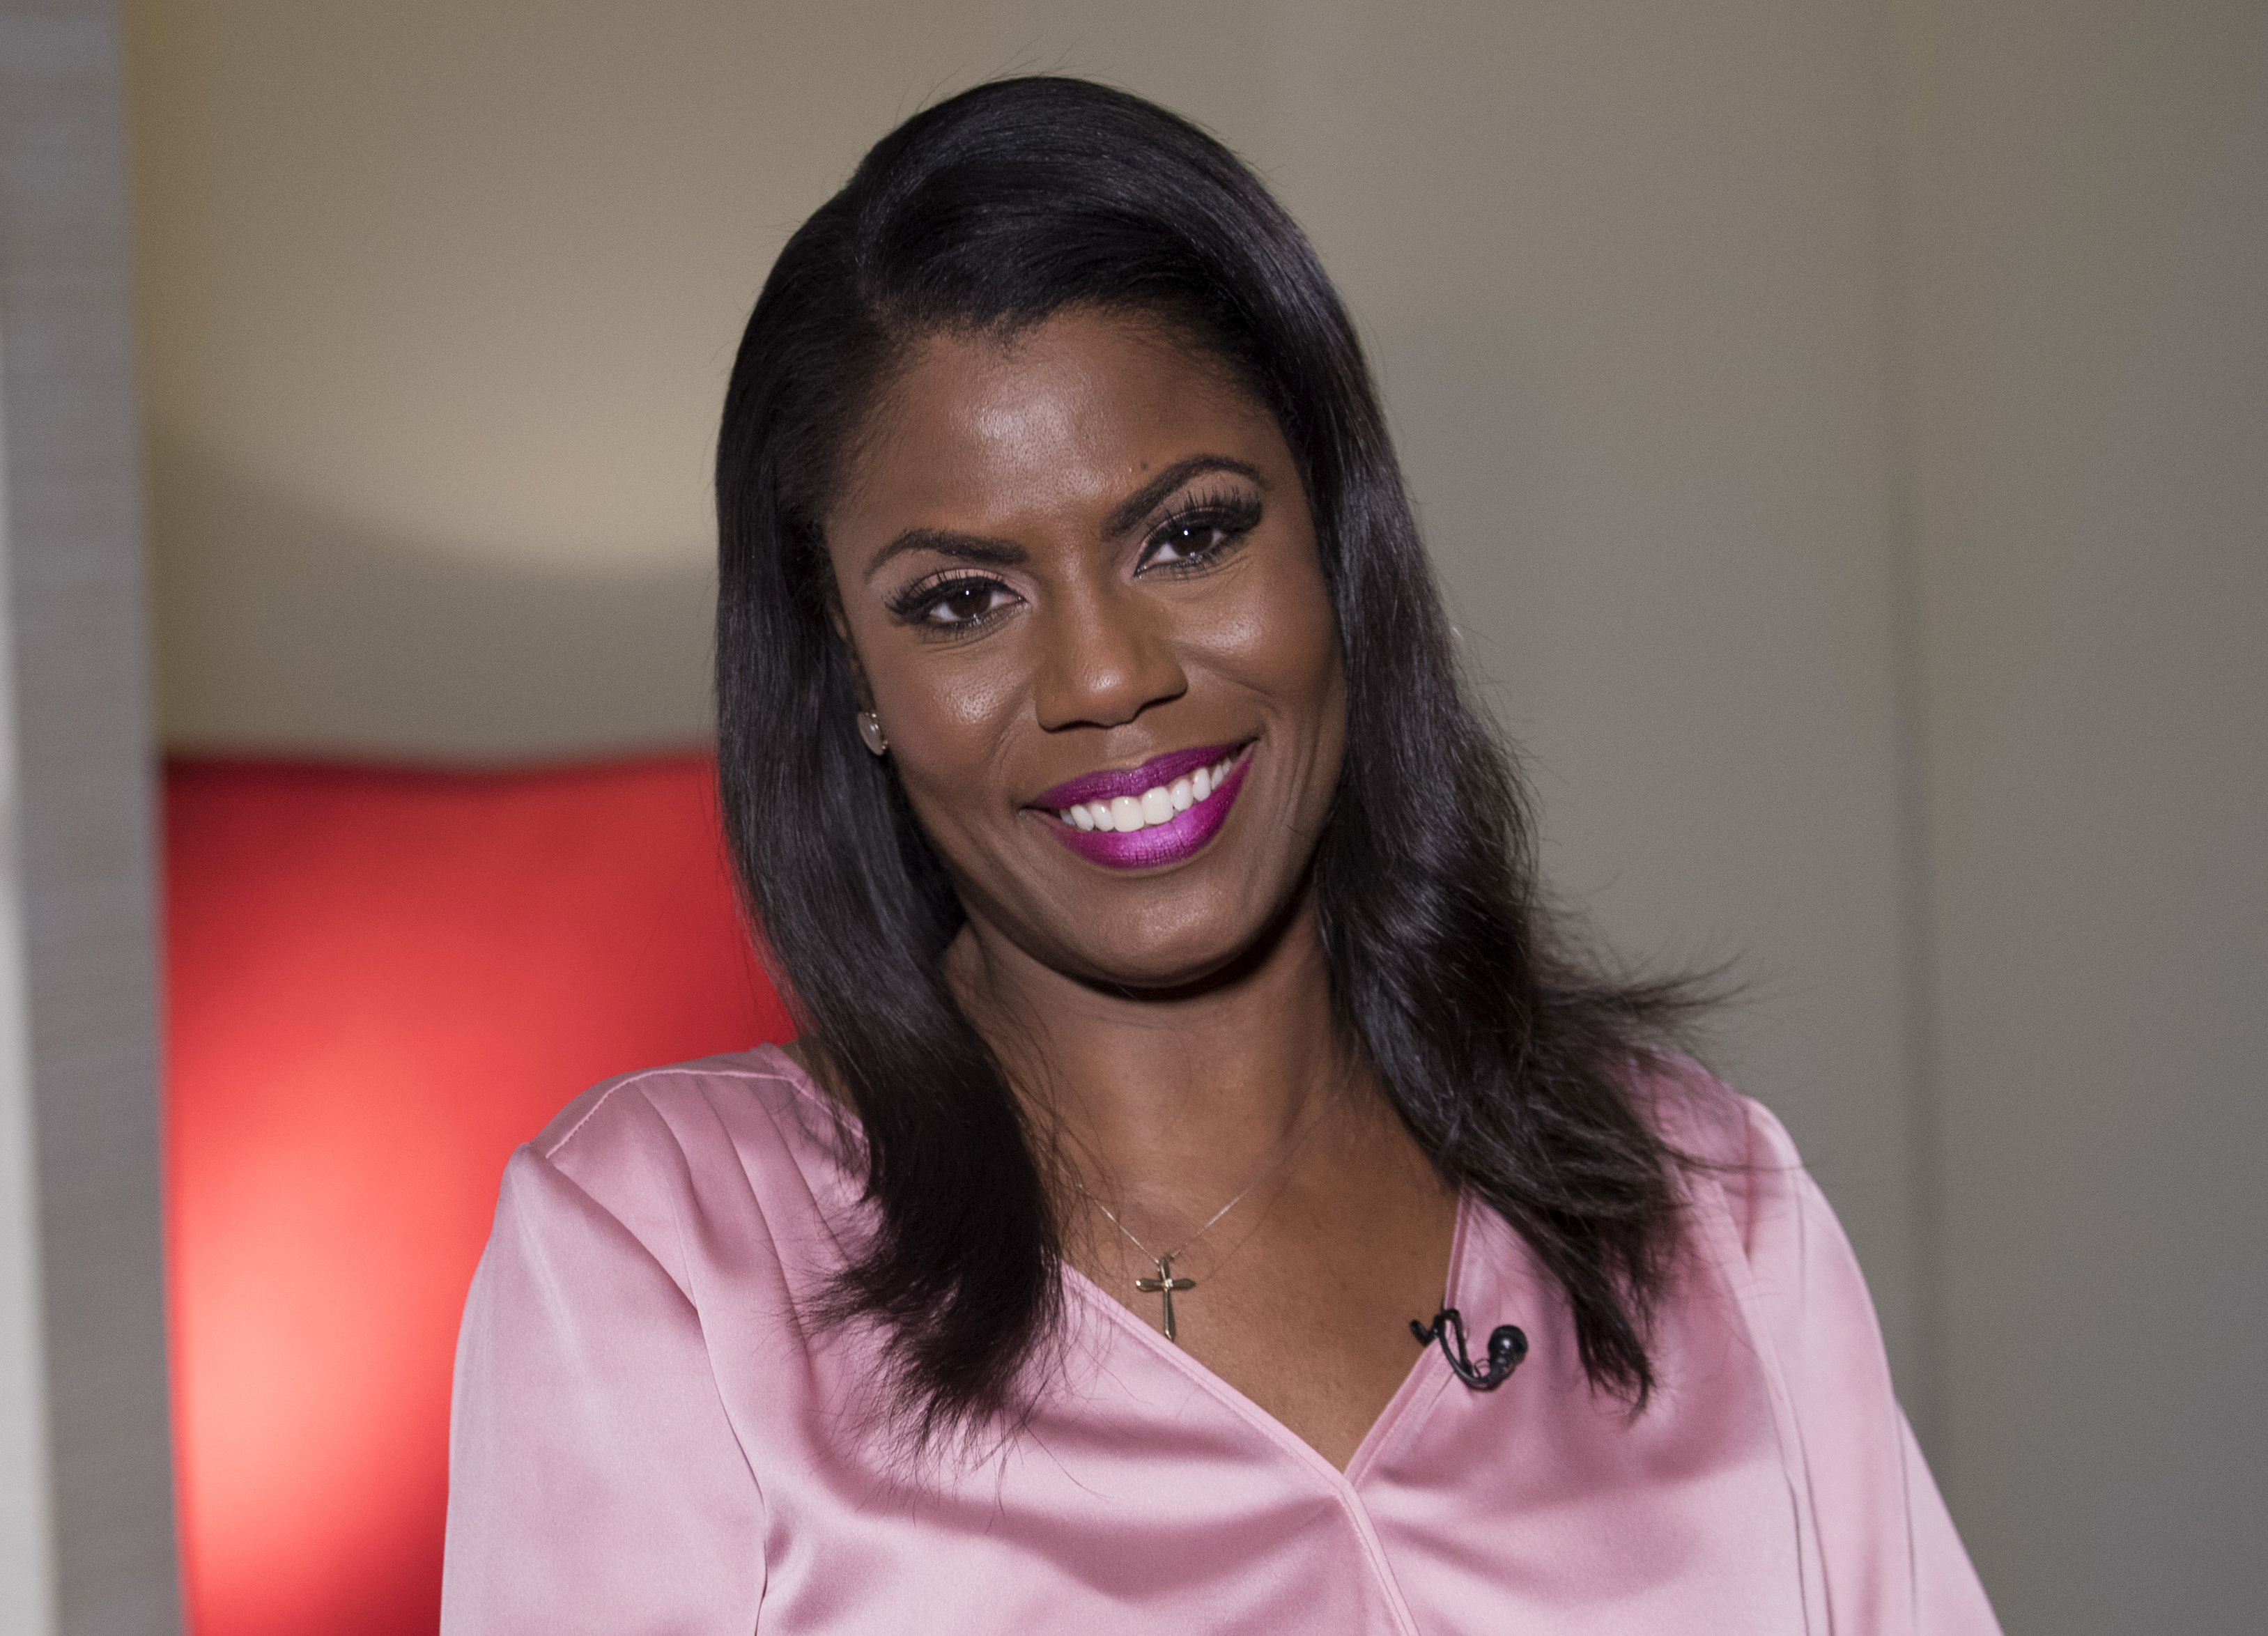 """Omarosa Manigault Newman - A former reality TV star, she returned to reality TV and has been critical of Trump after her dismissal as head of communications for the White House Office of Public Liaison. Manigault Newman's """"Unhinged"""" sold 34,000 copies, NPD BookScan reported Aug. 23. BookScan tracks around 85 percent of the print market. She also released a tape purportedly of Lara Trump offering her a $15,000-a-month job after her December 2017 firing from the administration. (AP Photo/Mary Altaffer, File)"""